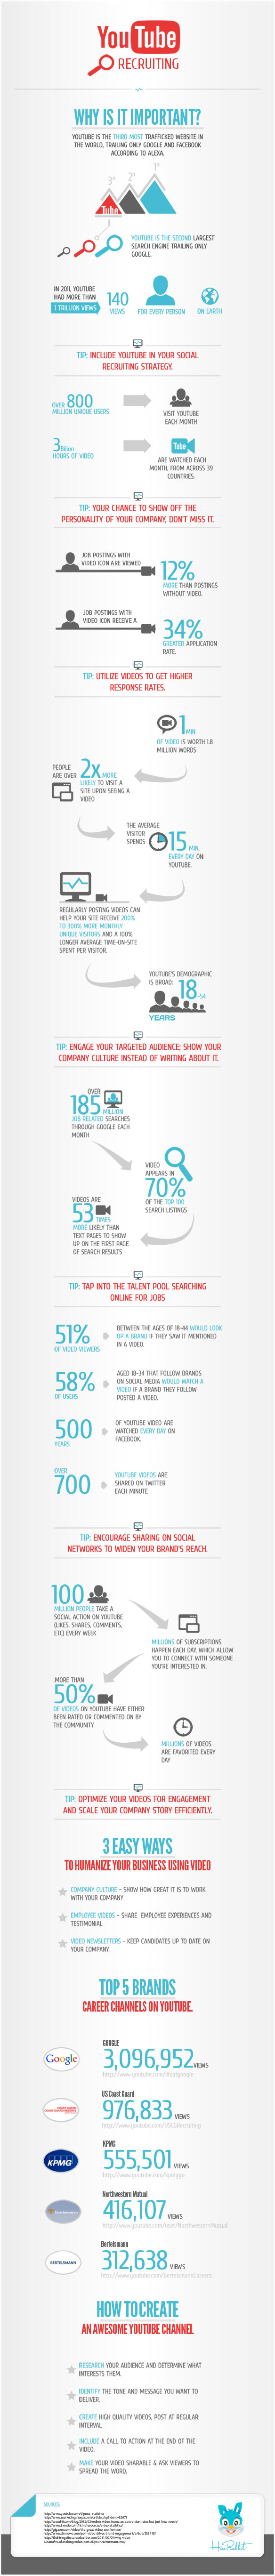 YouTube-for-recruiting-infographic